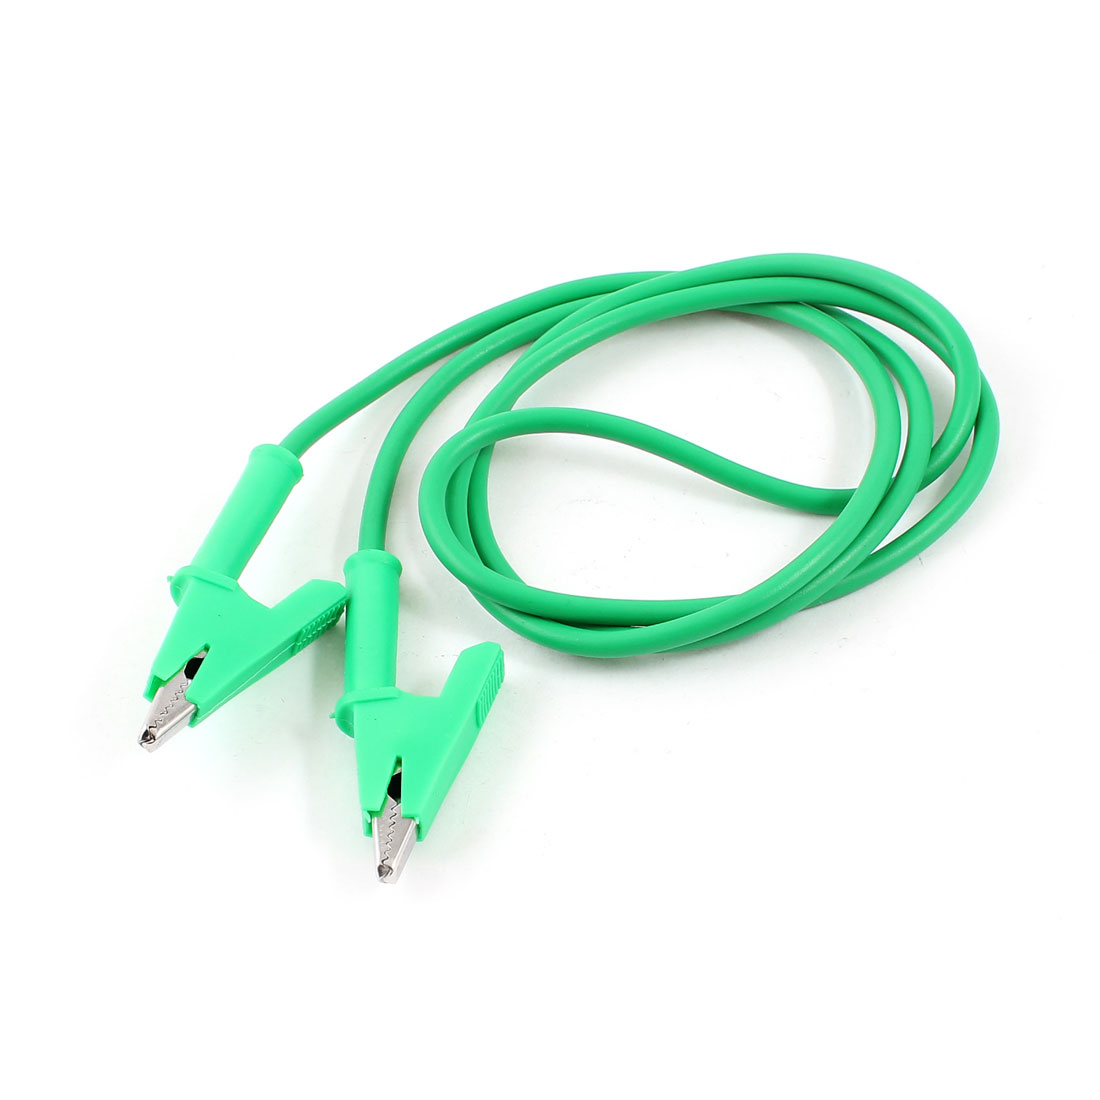 1M Long Alligator Clip Electrical Clamp Insulated Test Lead Cable Green